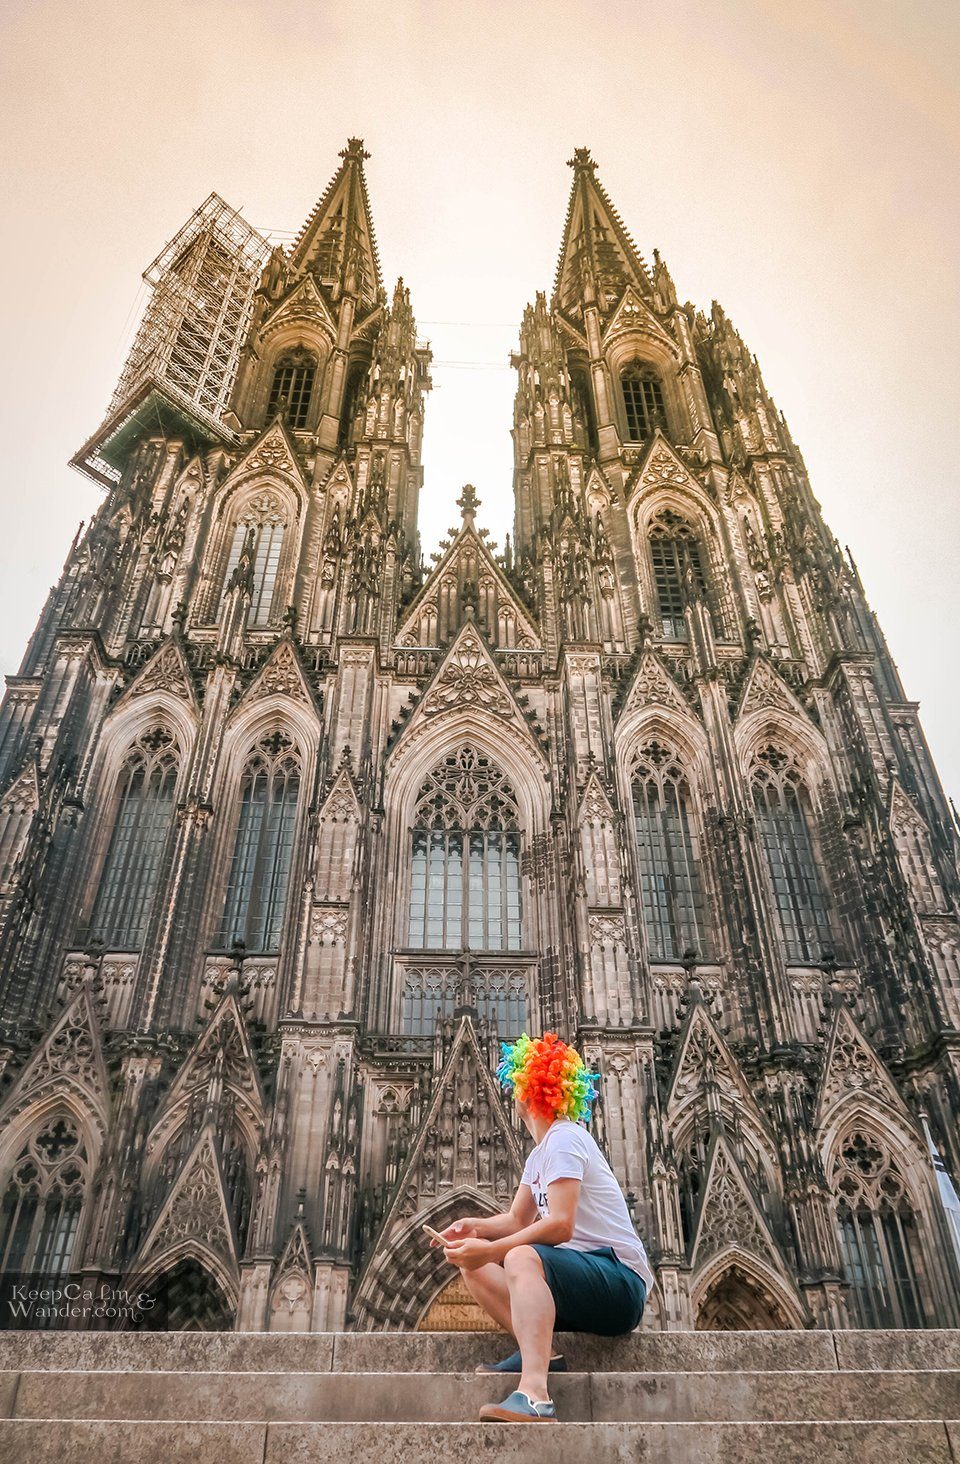 The Facade of Cologne Cathedral (Germany). Koln Travel Blog